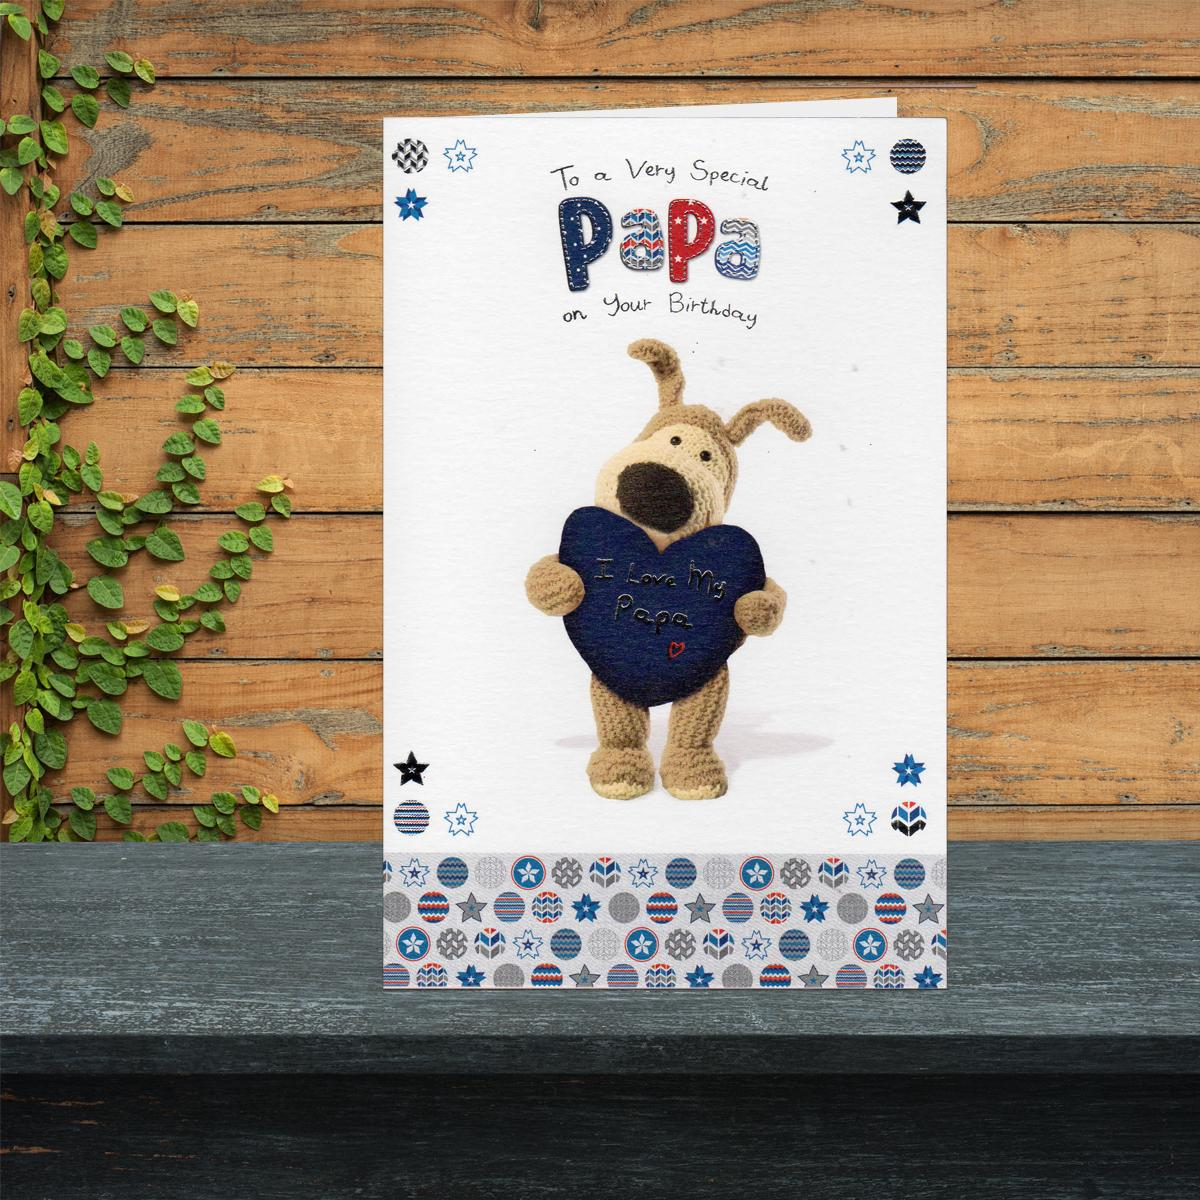 Boofle Papa Birthday Card Sitting On A Mantelpiece